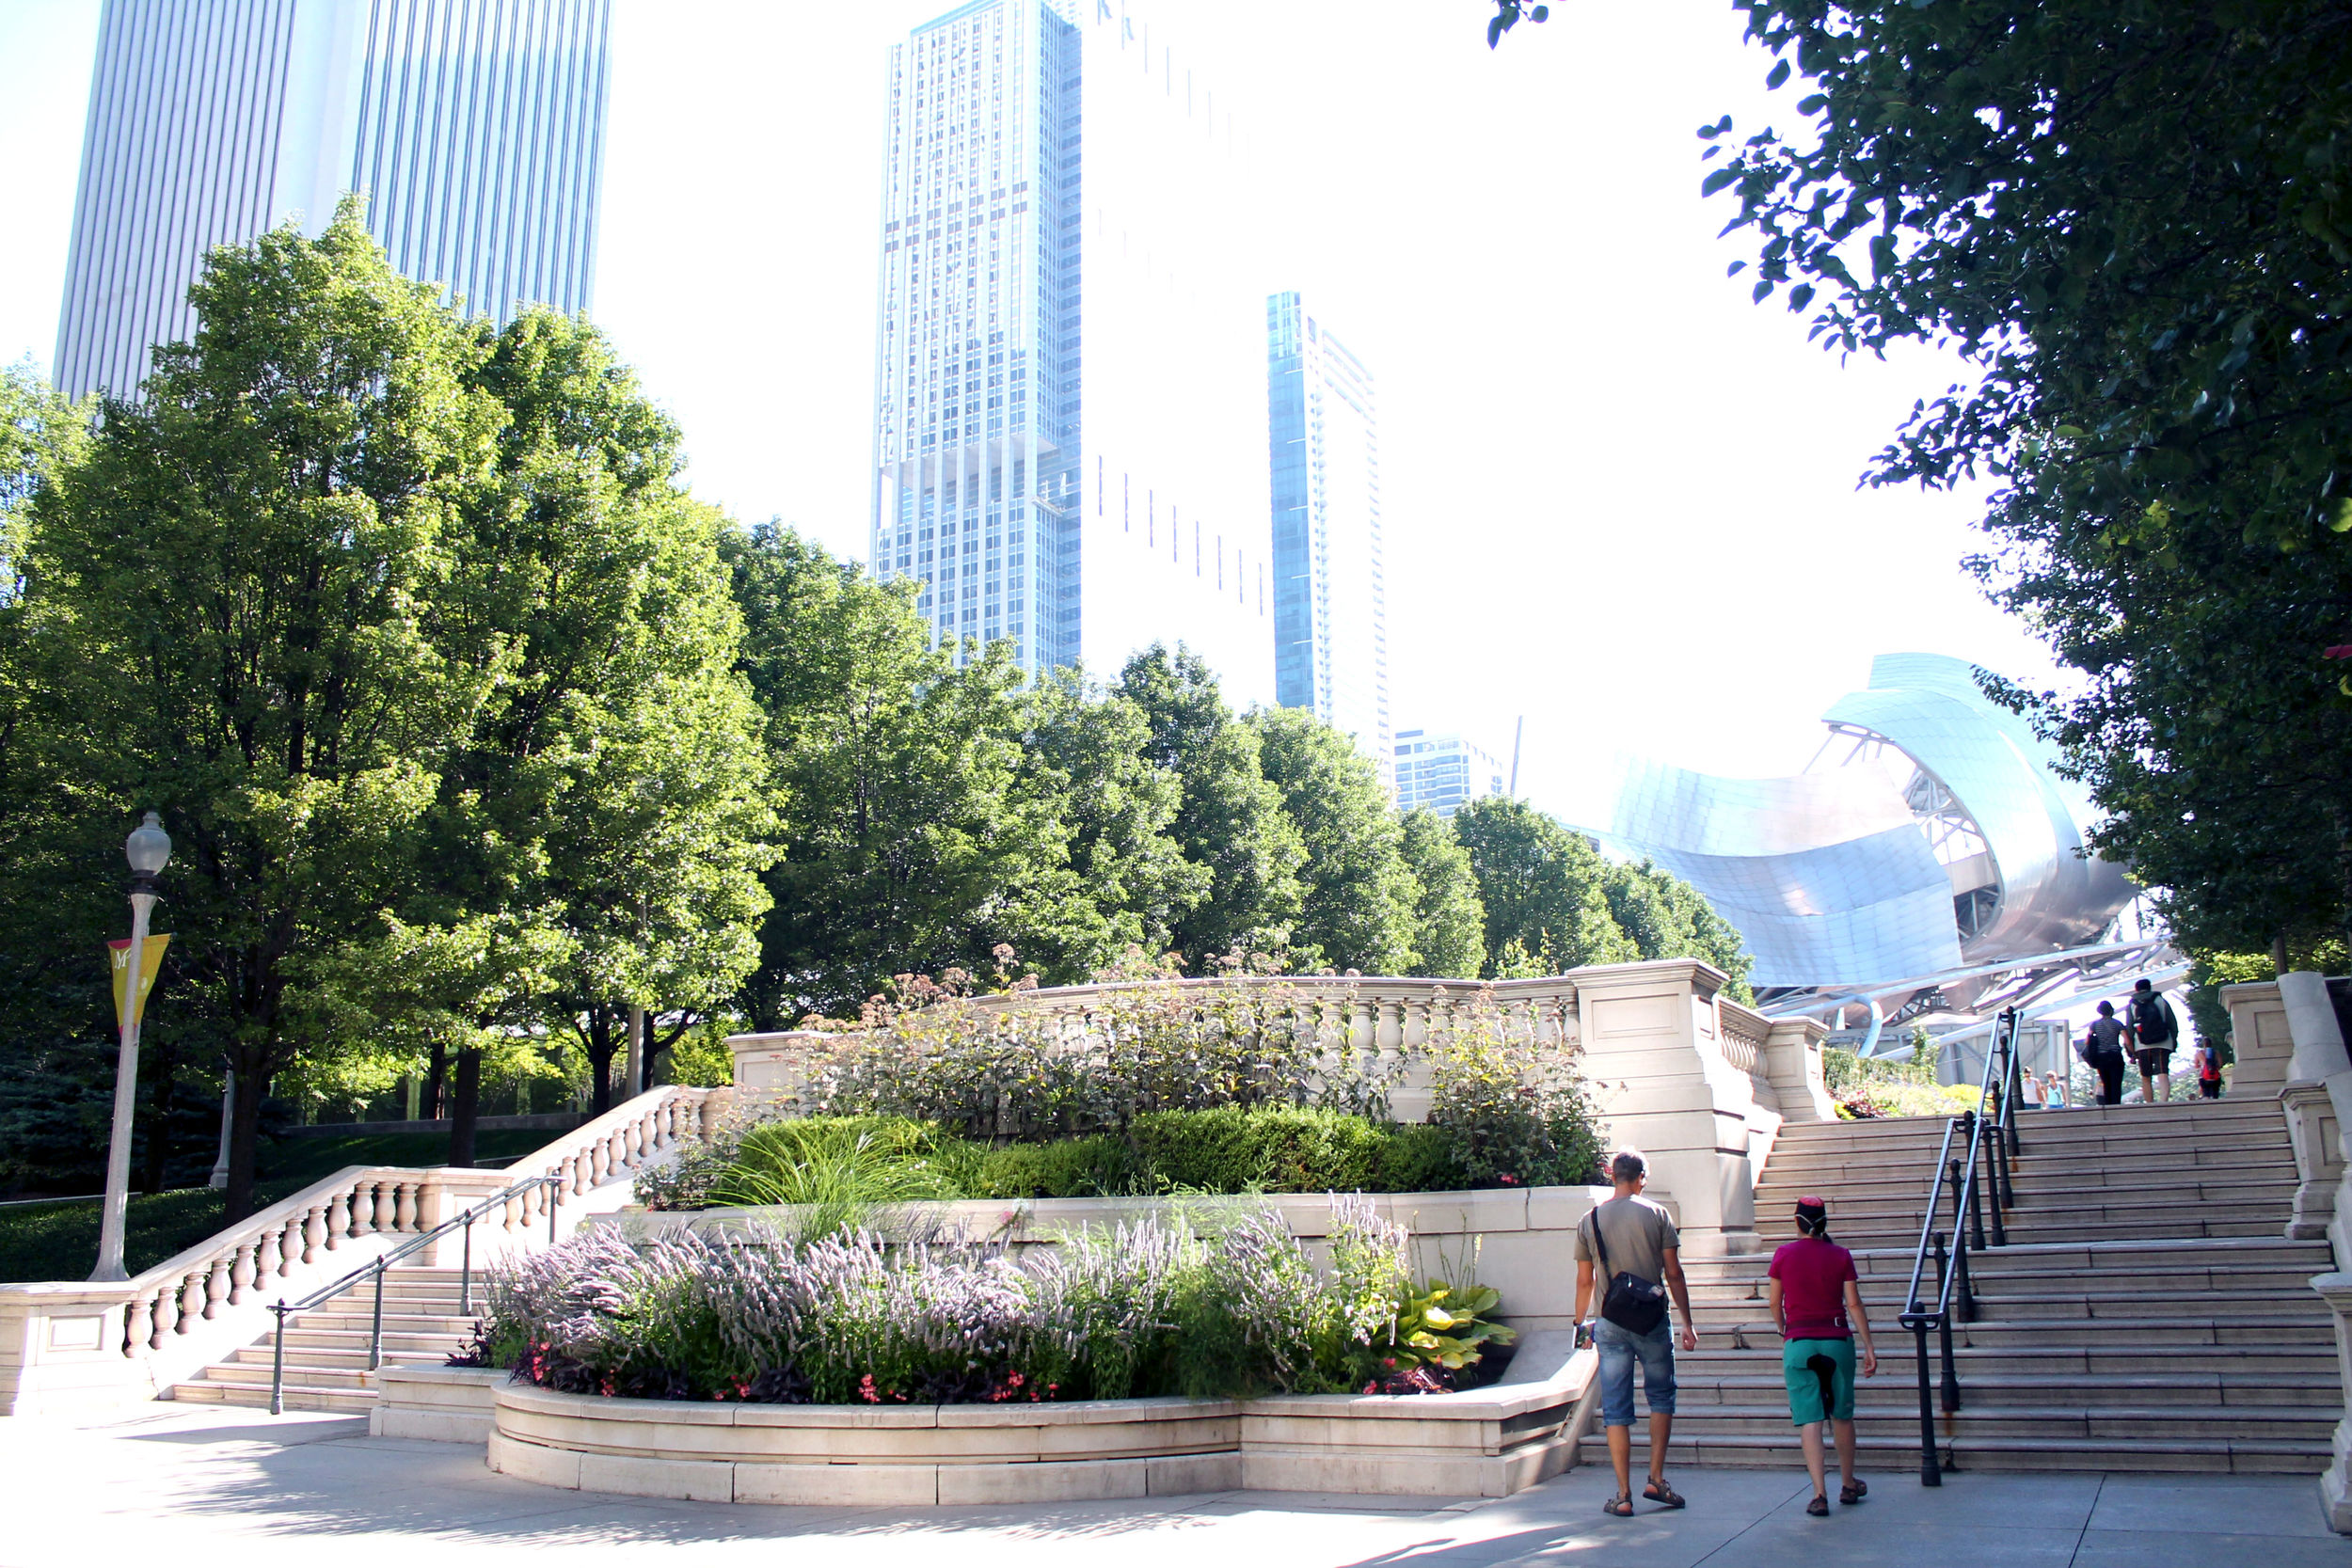 We stopped in Millennium Park as soon as we landed, just before 8 am